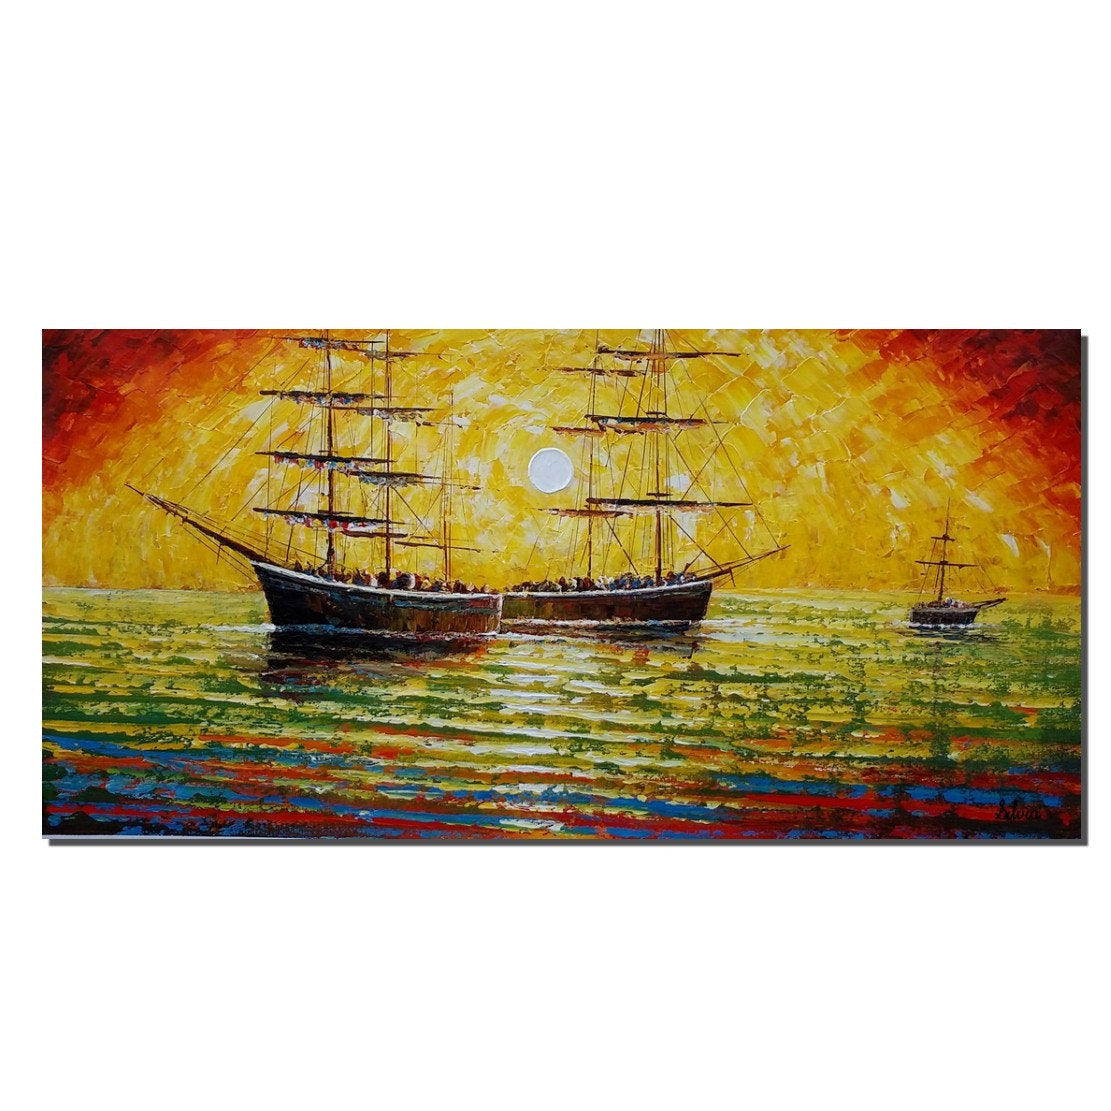 Boat Painting, Original Painting, Bedroom Wall Art, Acrylic Painting - Silvia Home Craft